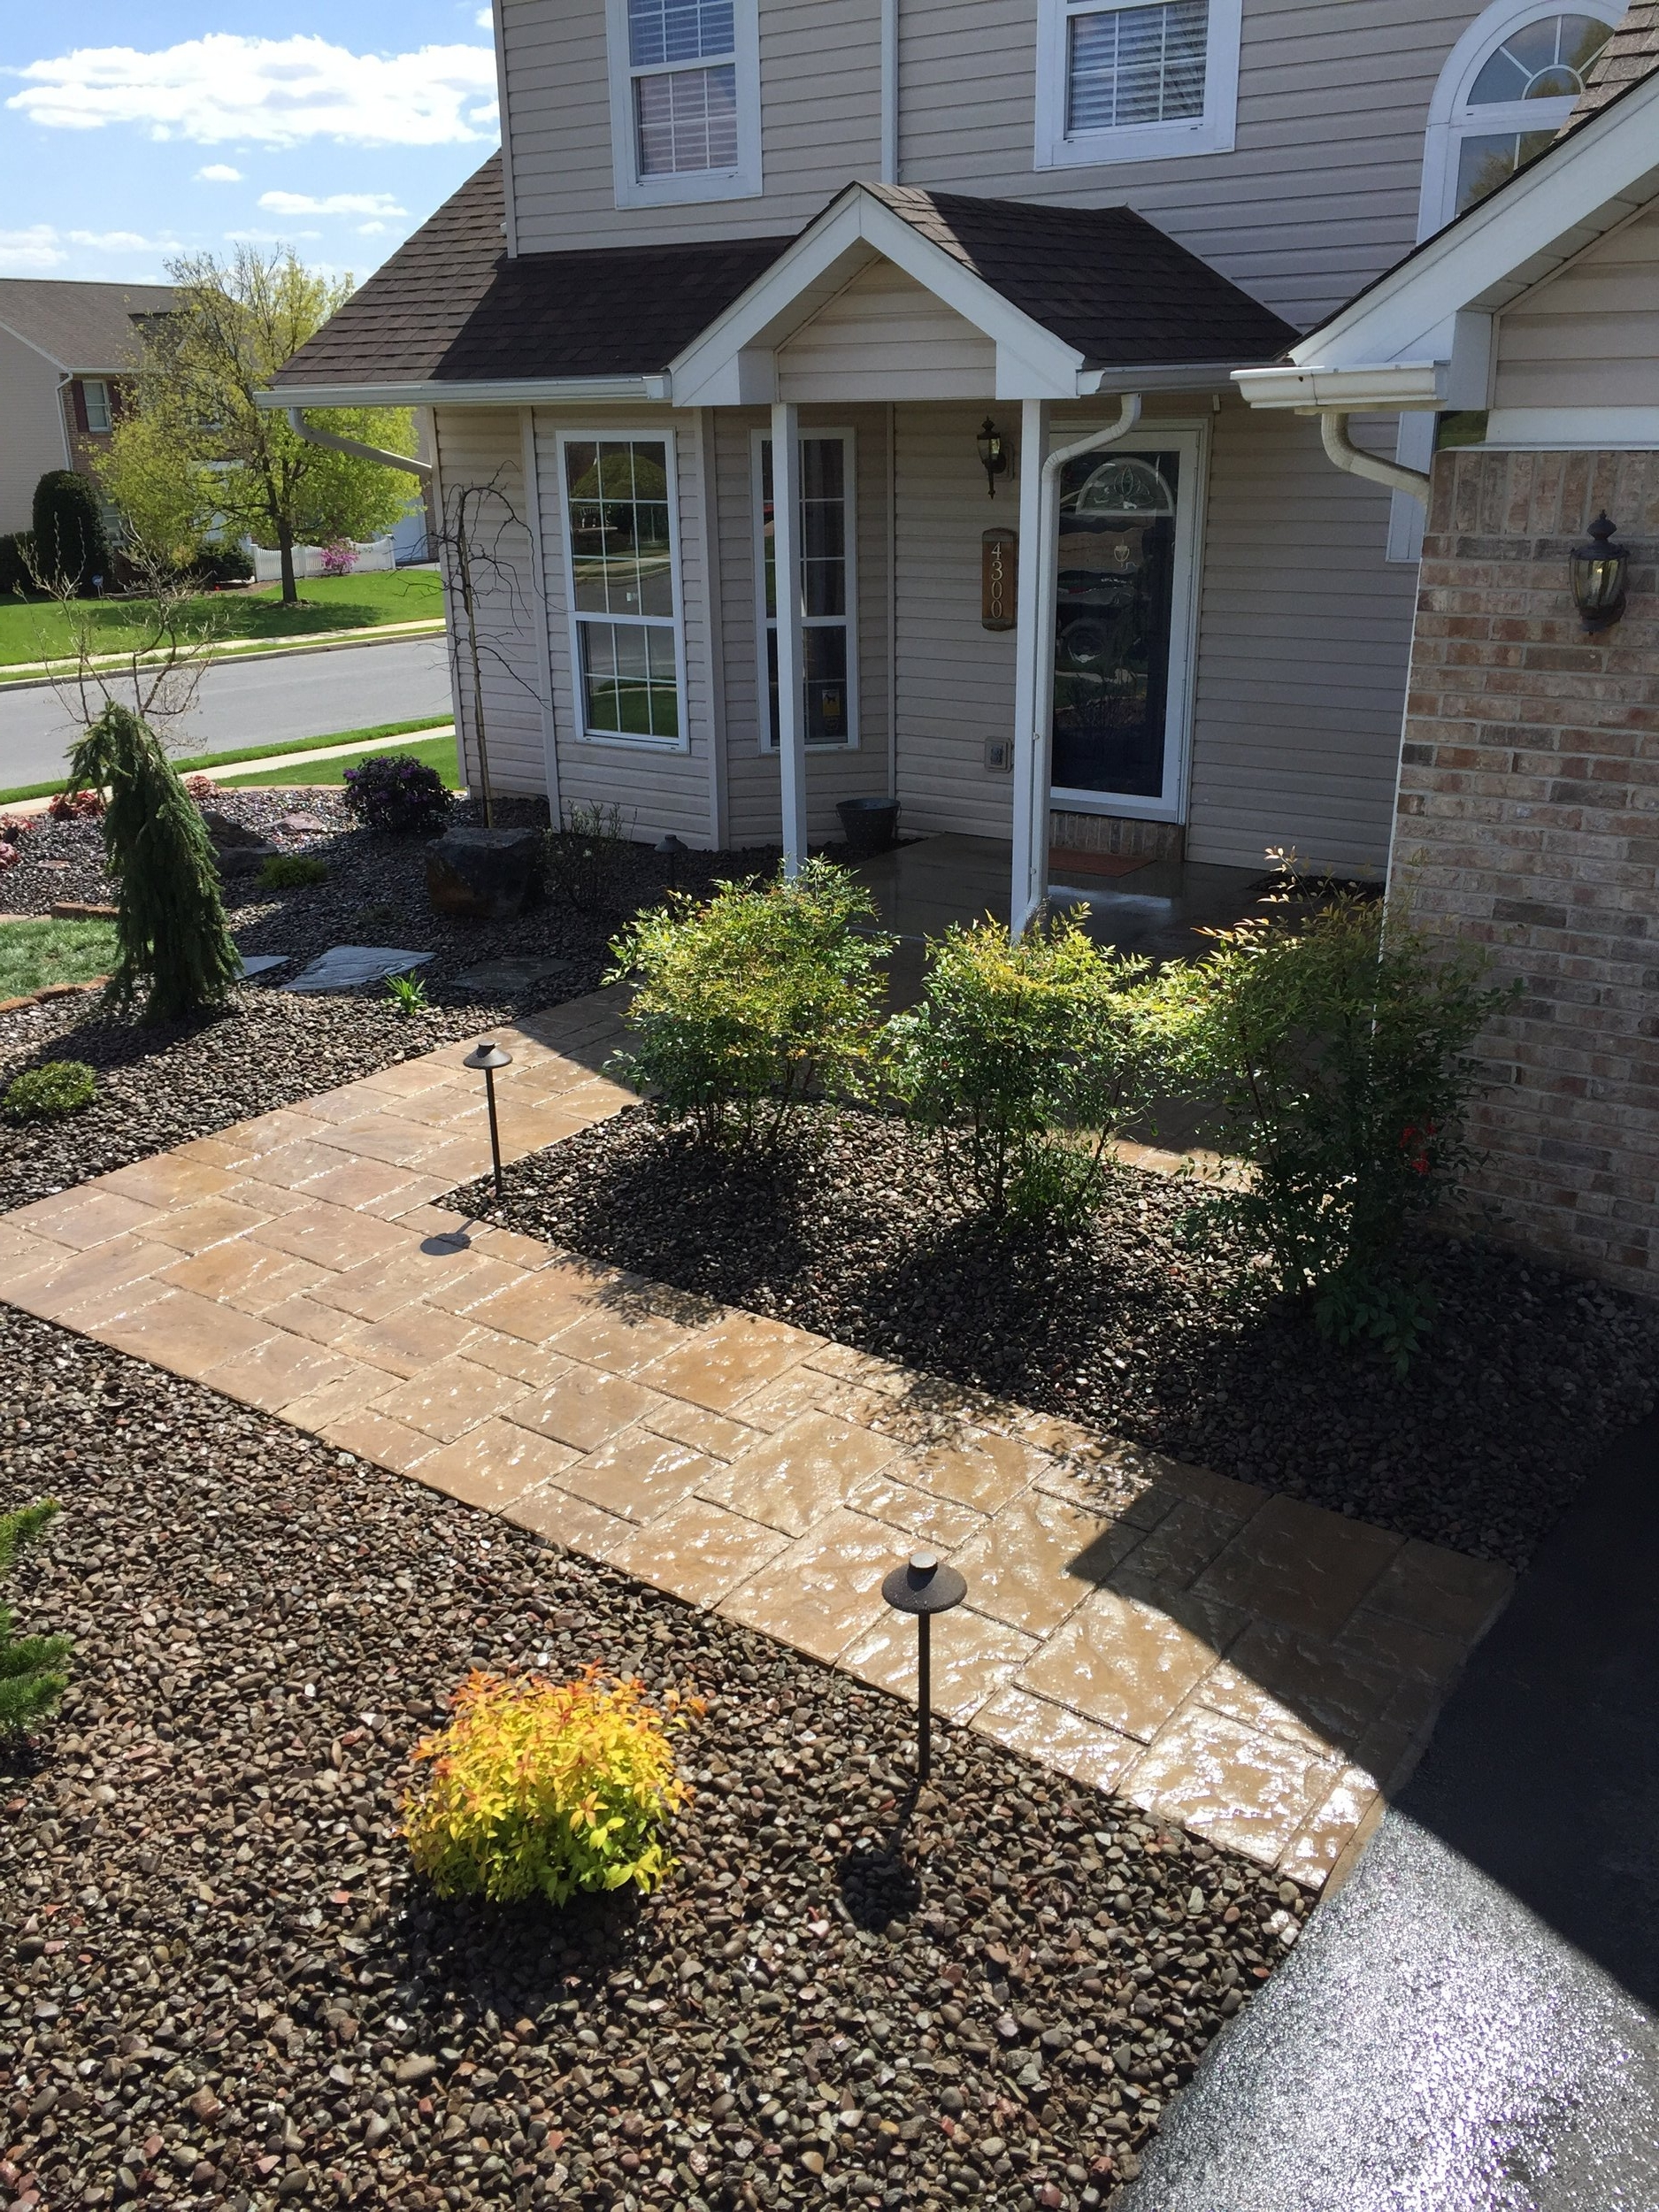 Professional landscape design inLehigh county, PA